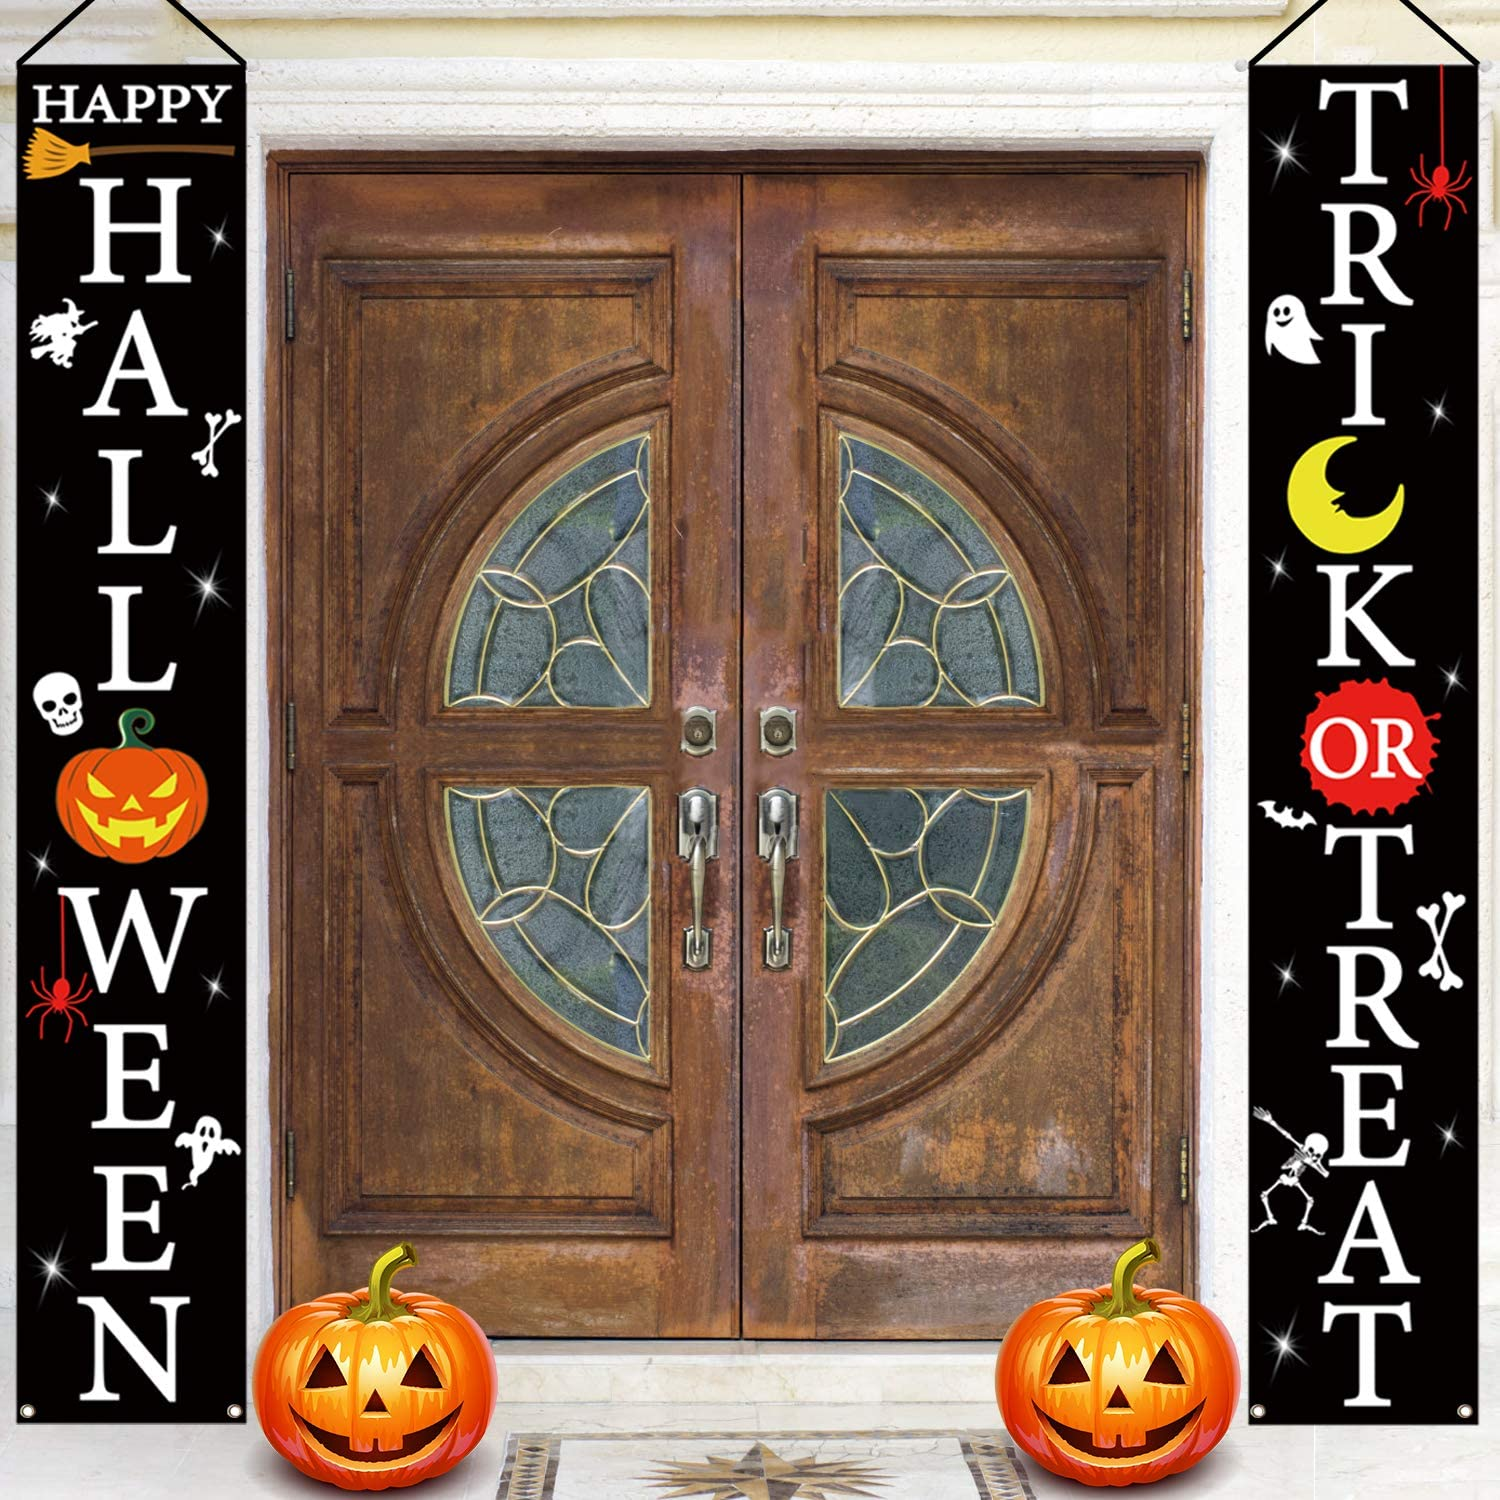 Monsoon Halloween Front Door Porch Decorations   Trick or Treat & Happy Halloween Hanging Signs for Home Yard Outdoor Decor   Halloween Welcome Signs